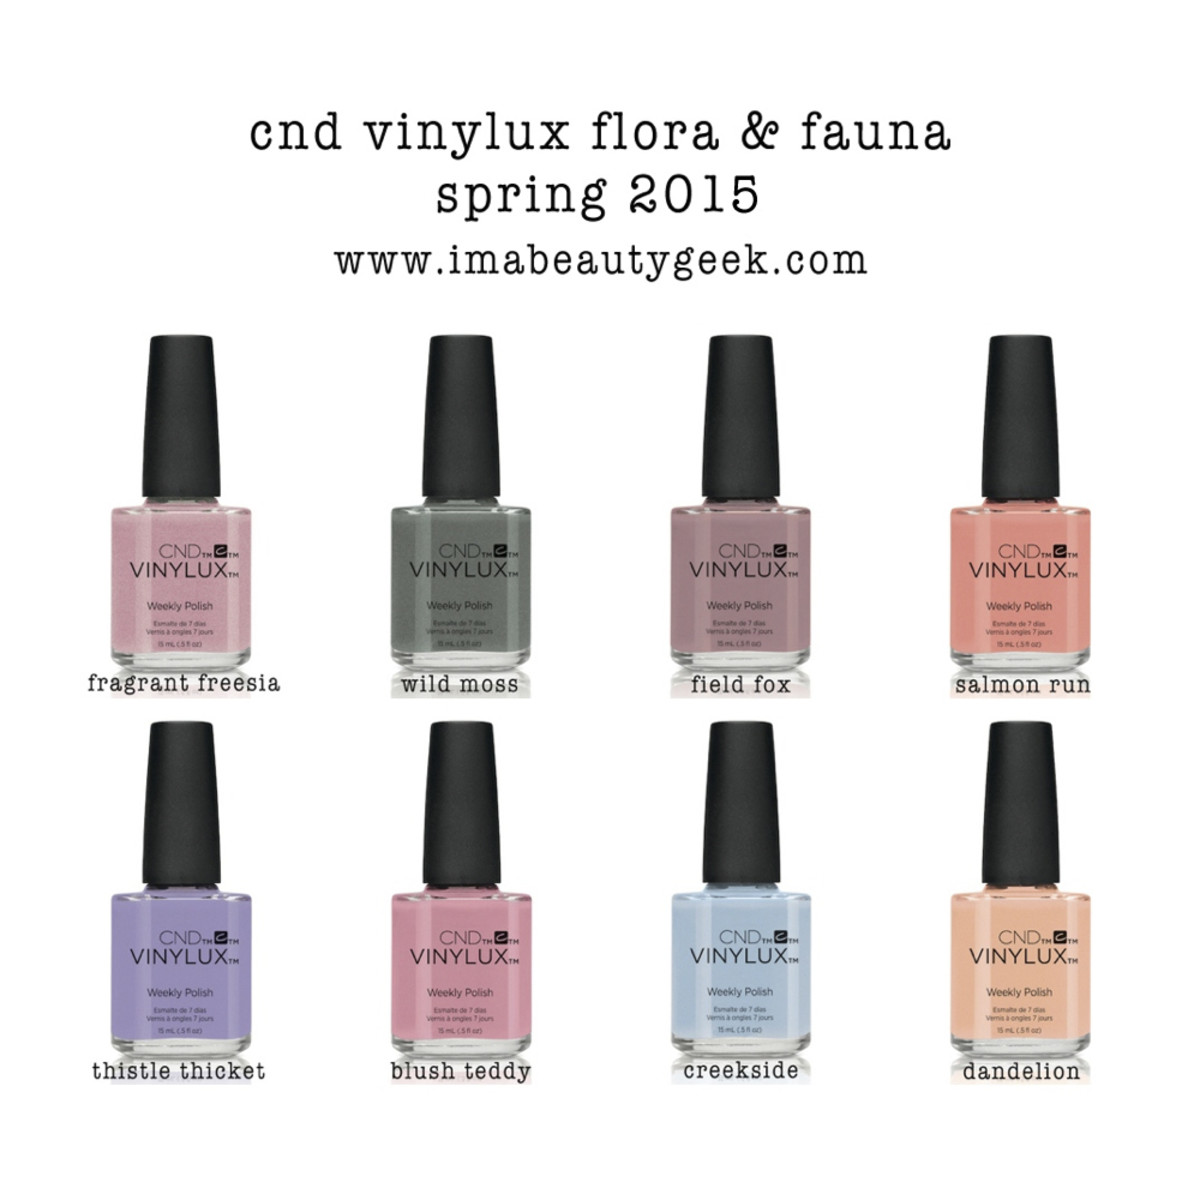 CND Vinylux Flora & Fauna Collection Spring 2015